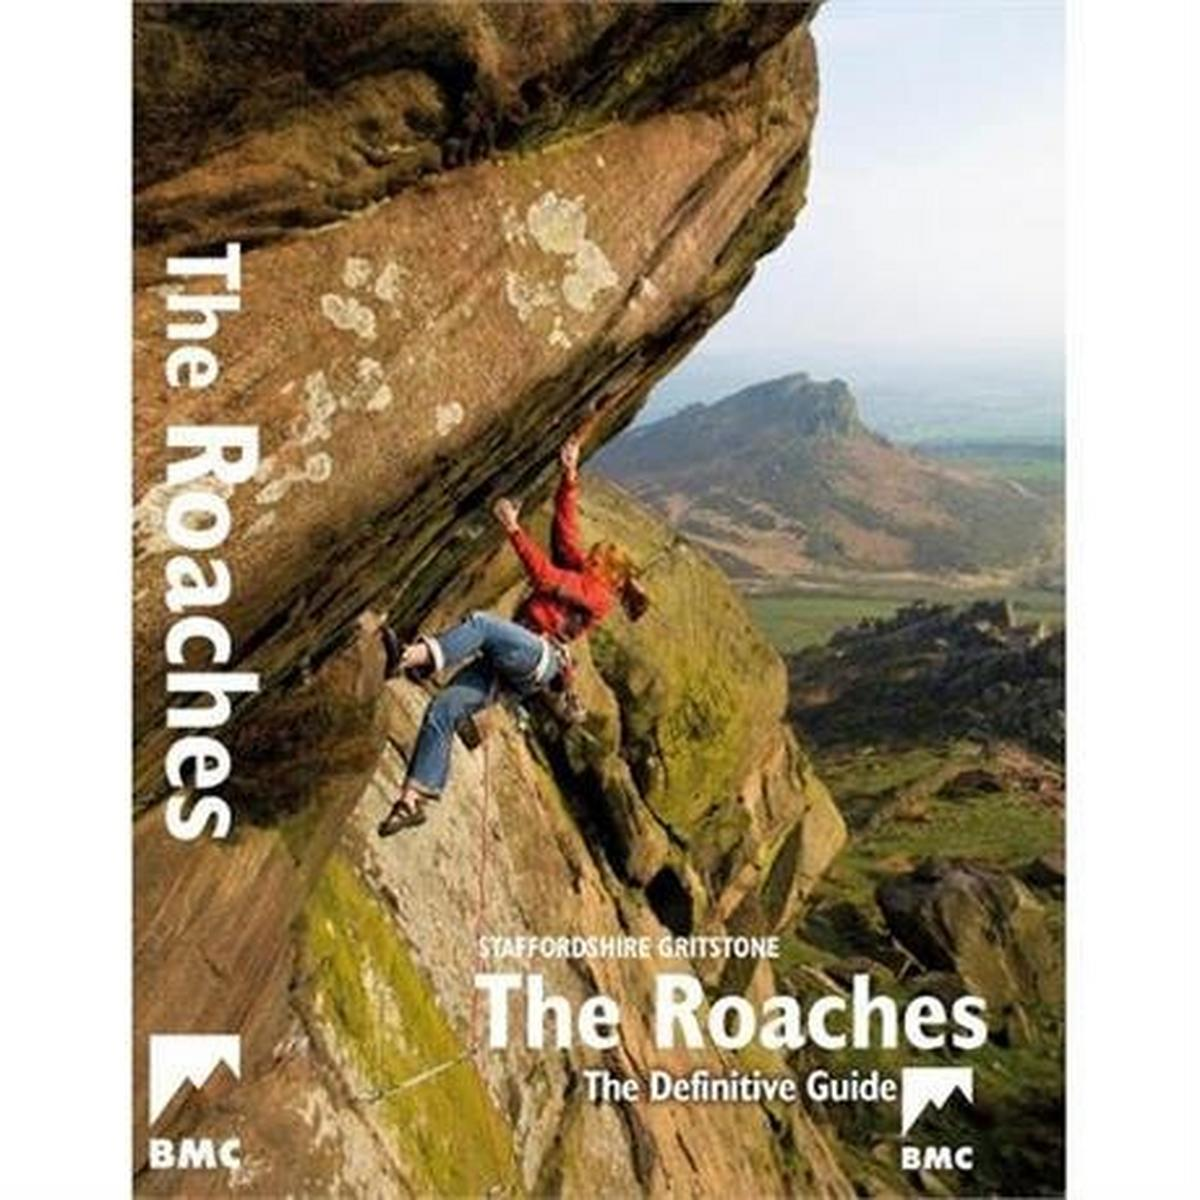 Cordee BMC Climbing Guide Book: Staffordshire Gritstone - The Roaches